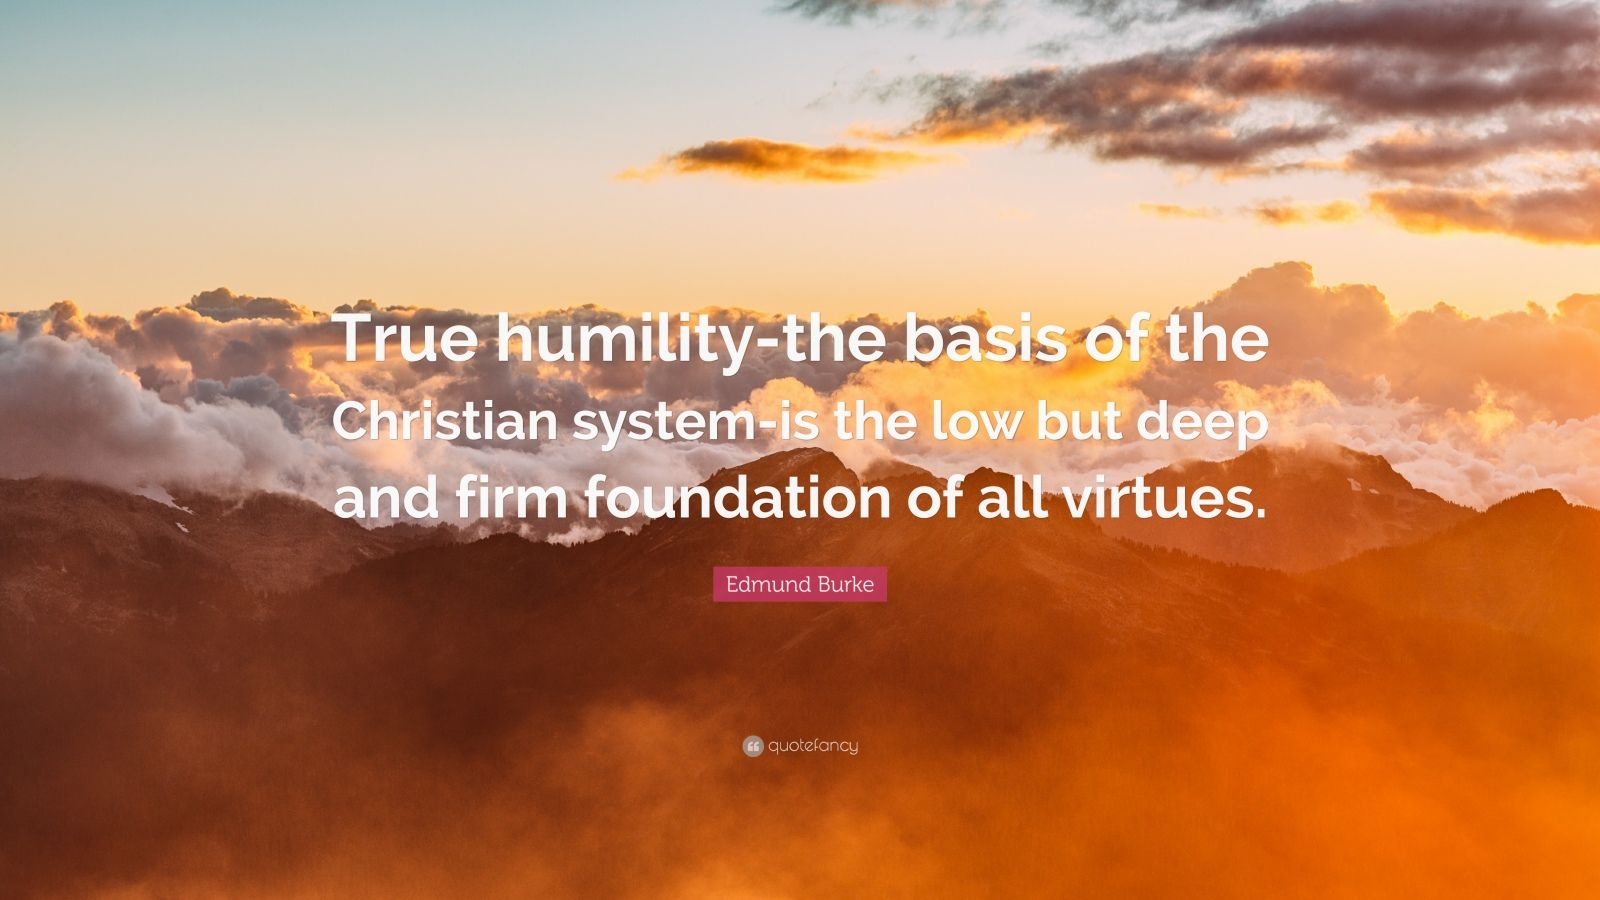 """Edmund Burke Quote: """"True humility-the basis of the Christian system-is the low but deep and firm foundation of all virtues."""""""